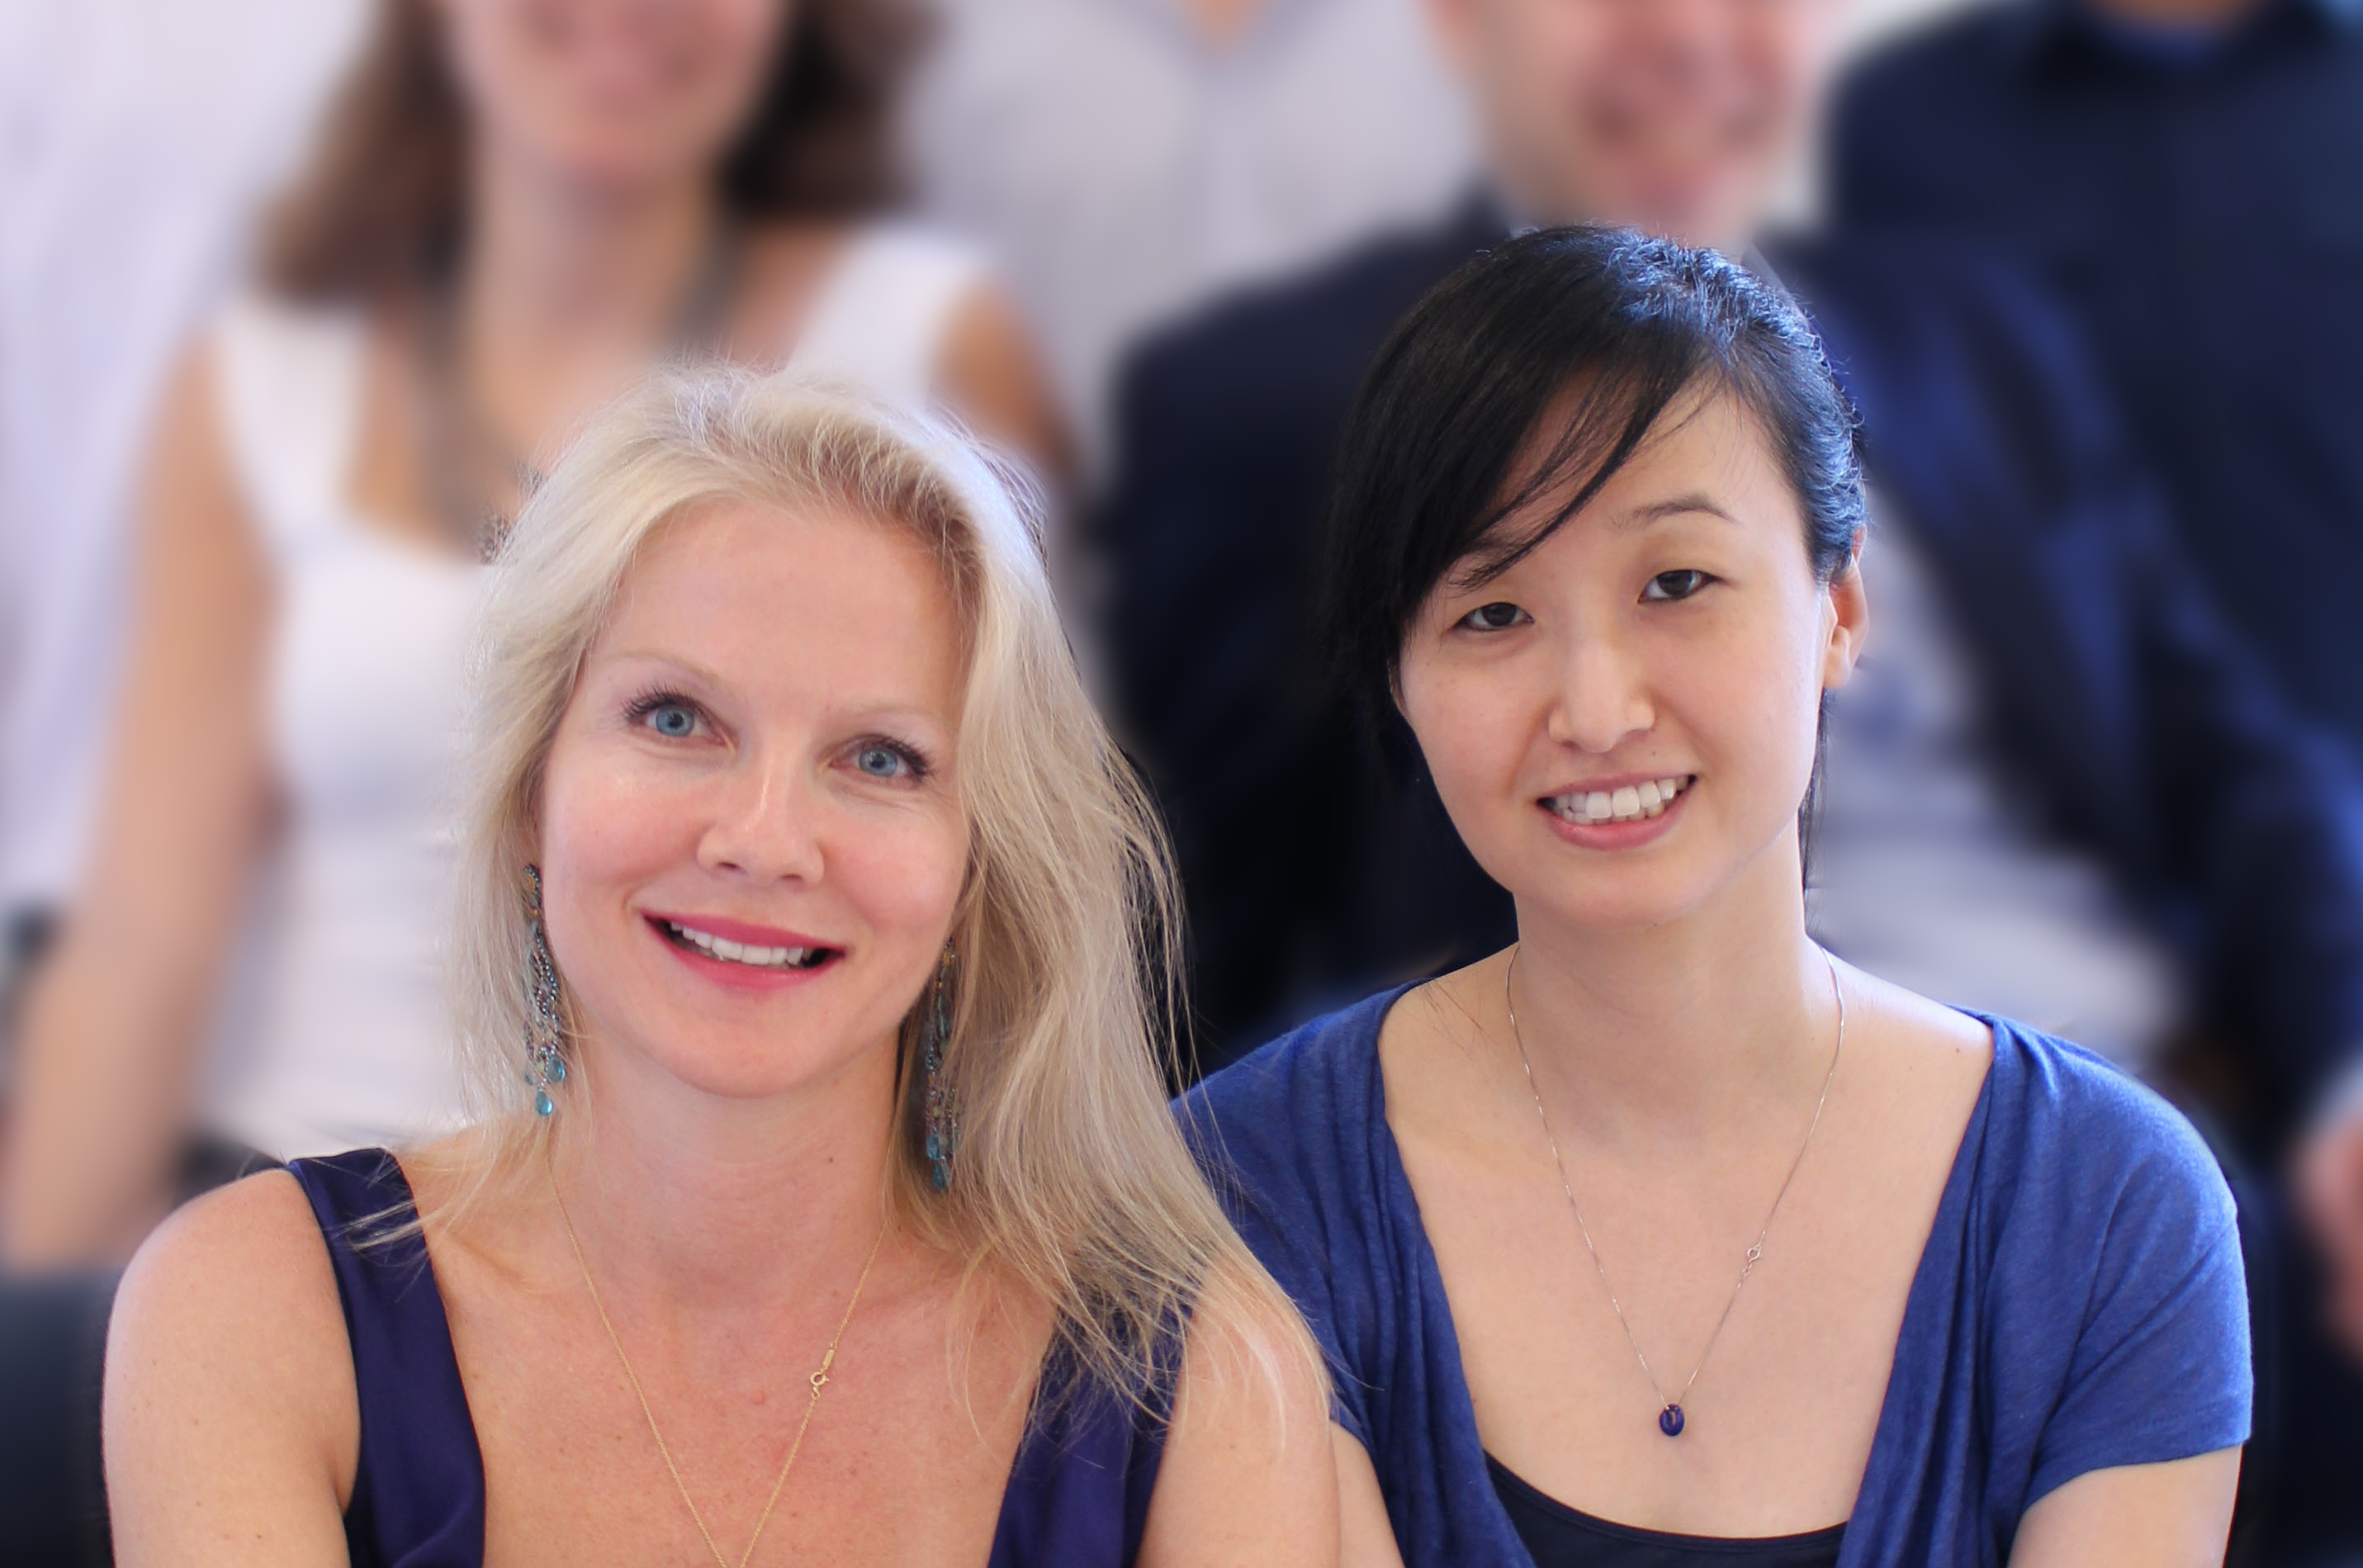 Pymetrics co-founders Frida Polli and Julie Yoo